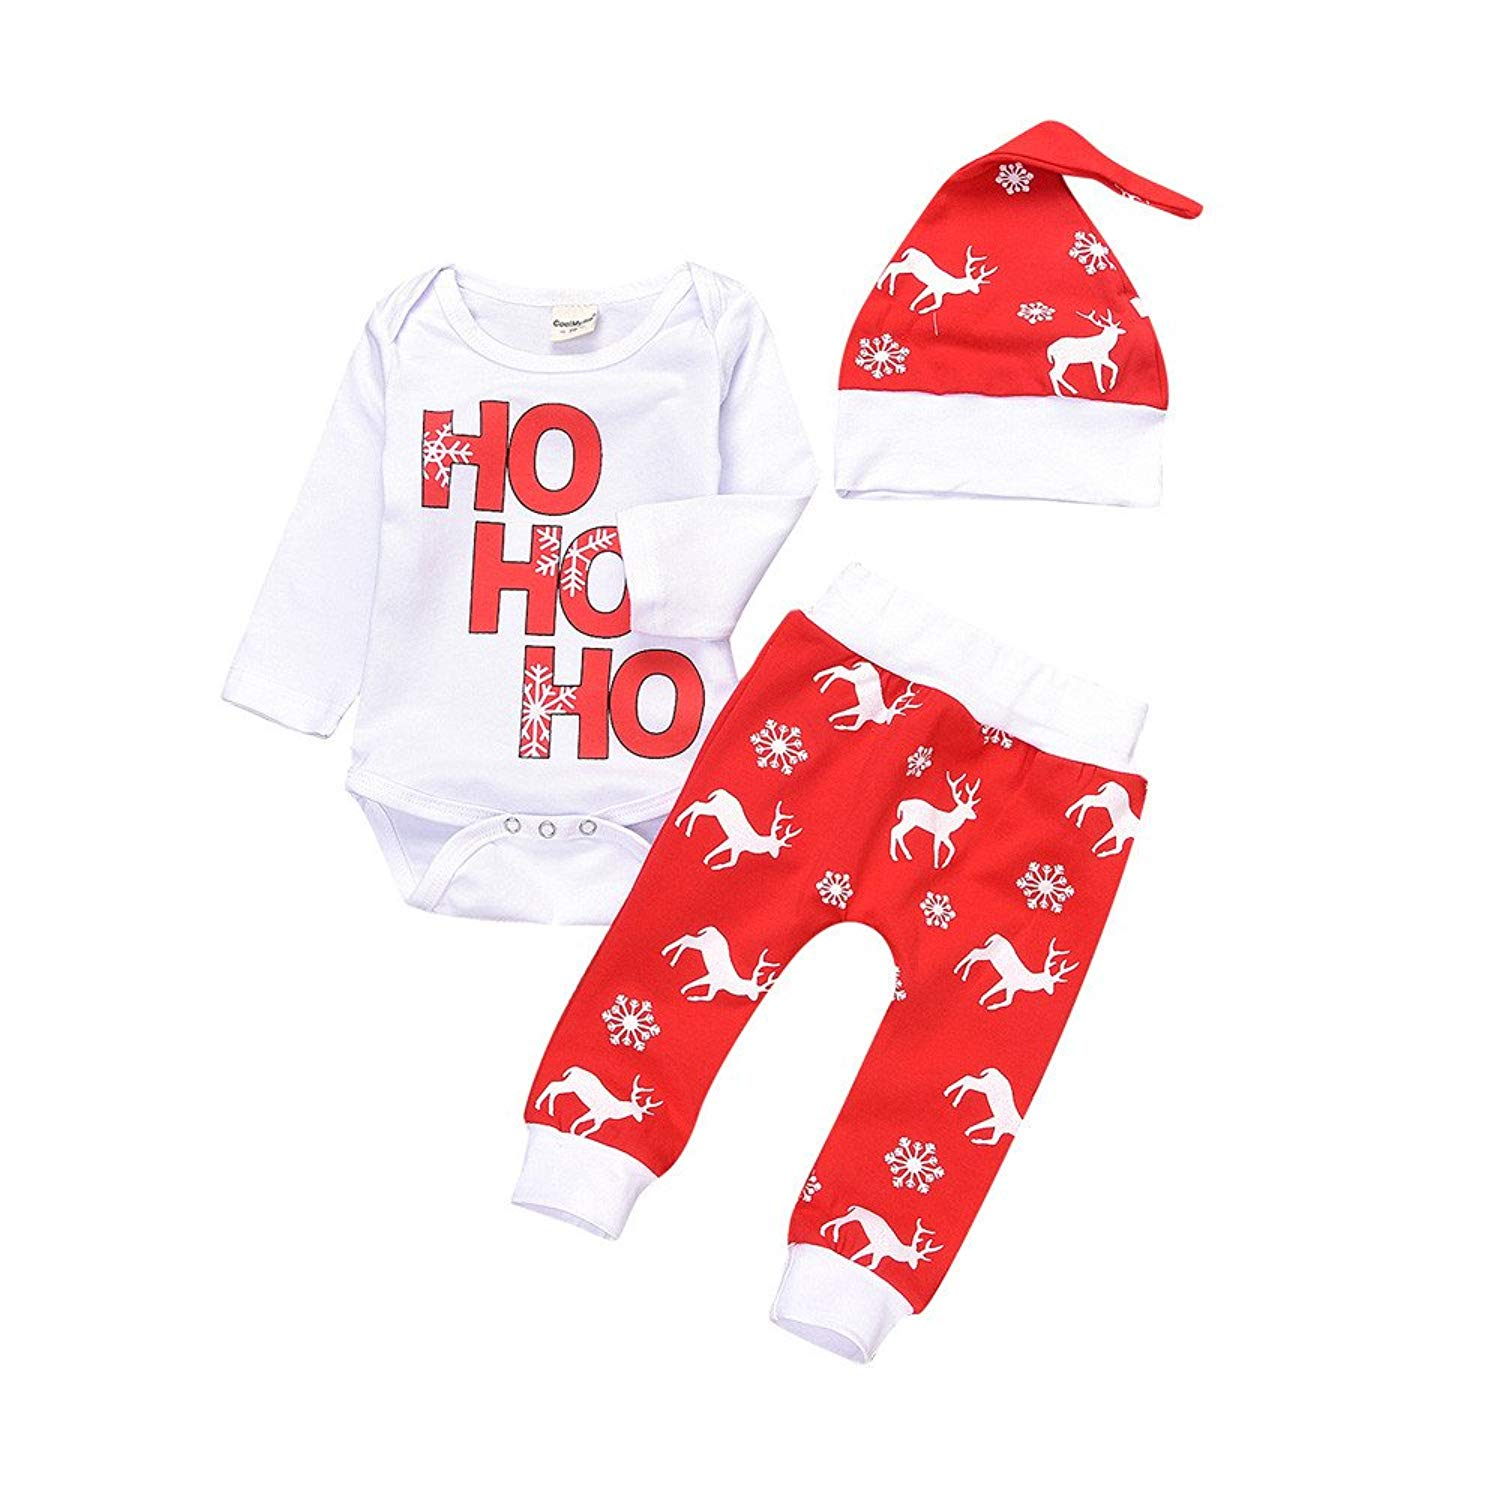 3ef6b4a3a50 3pcs Xmas Newborn Infant Baby Boy Girl Deer Letter Print Romper Tops+